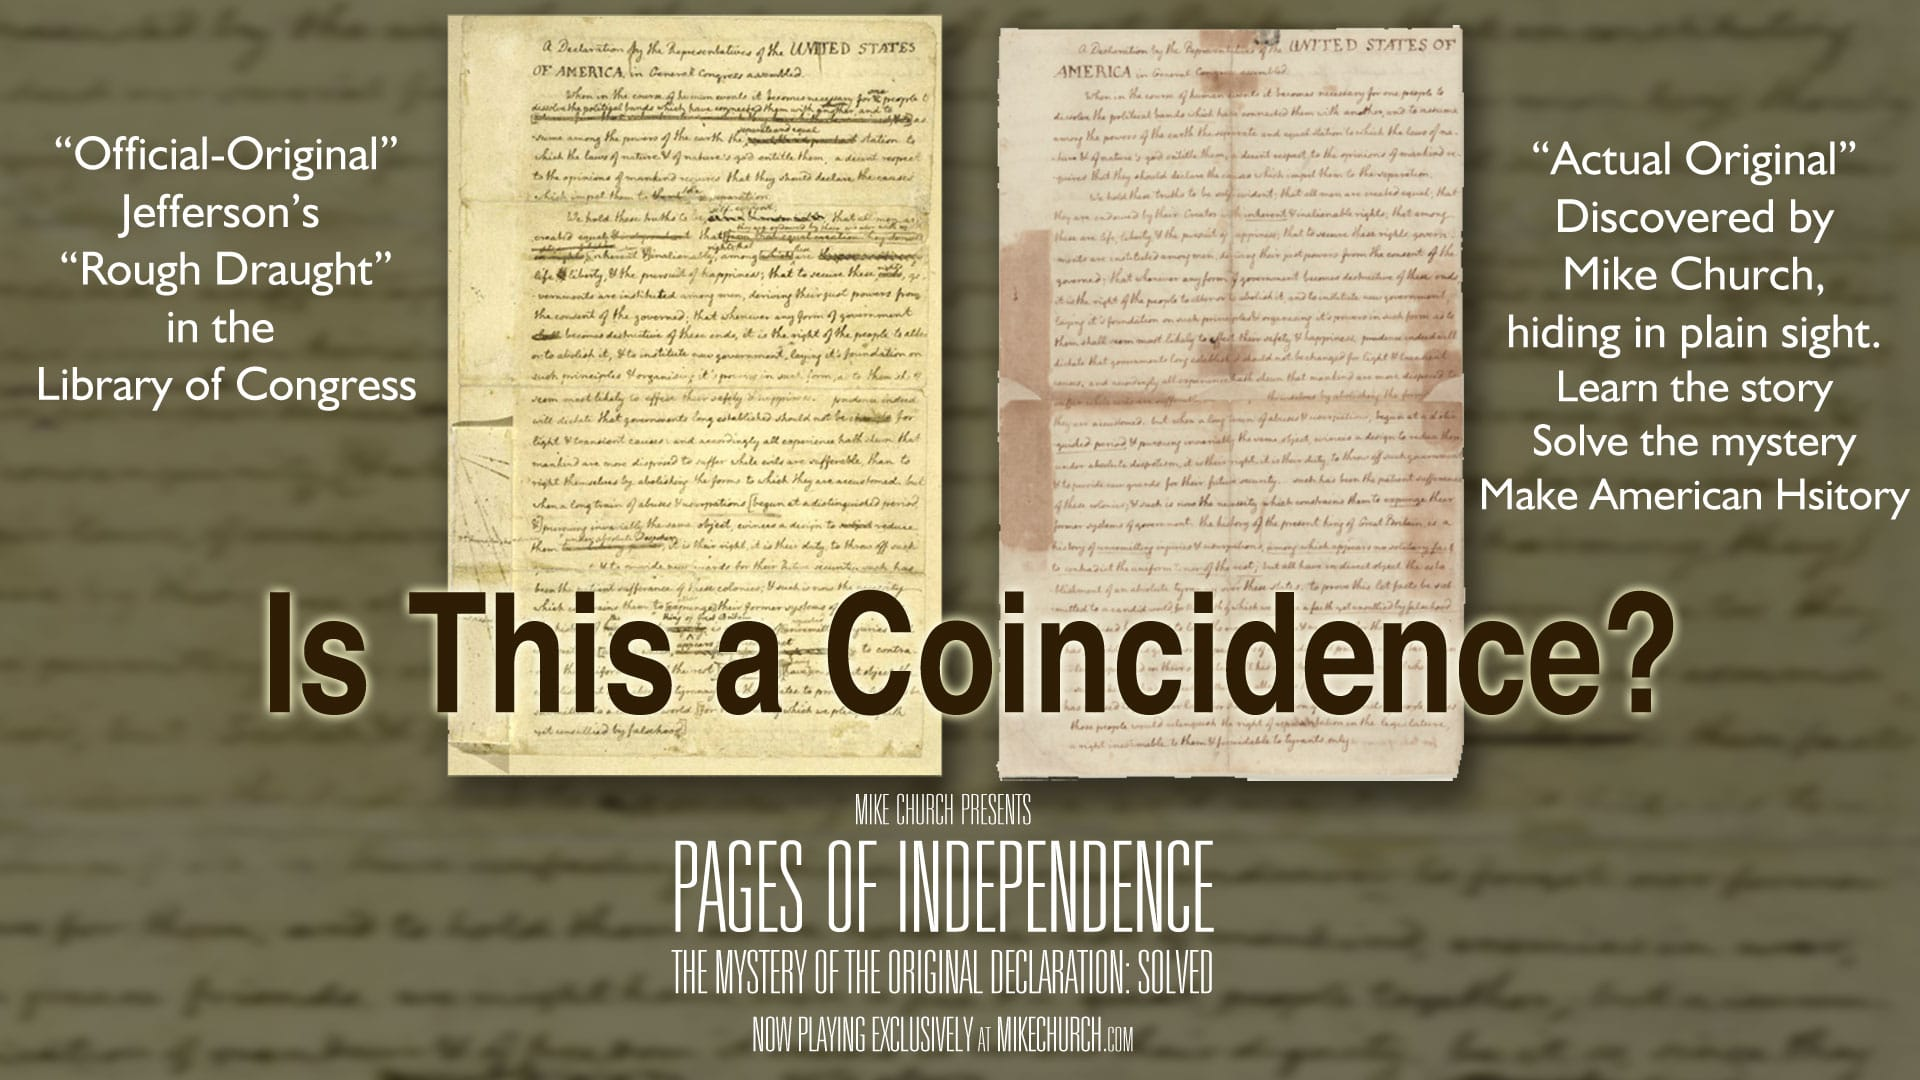 Pages of Independence